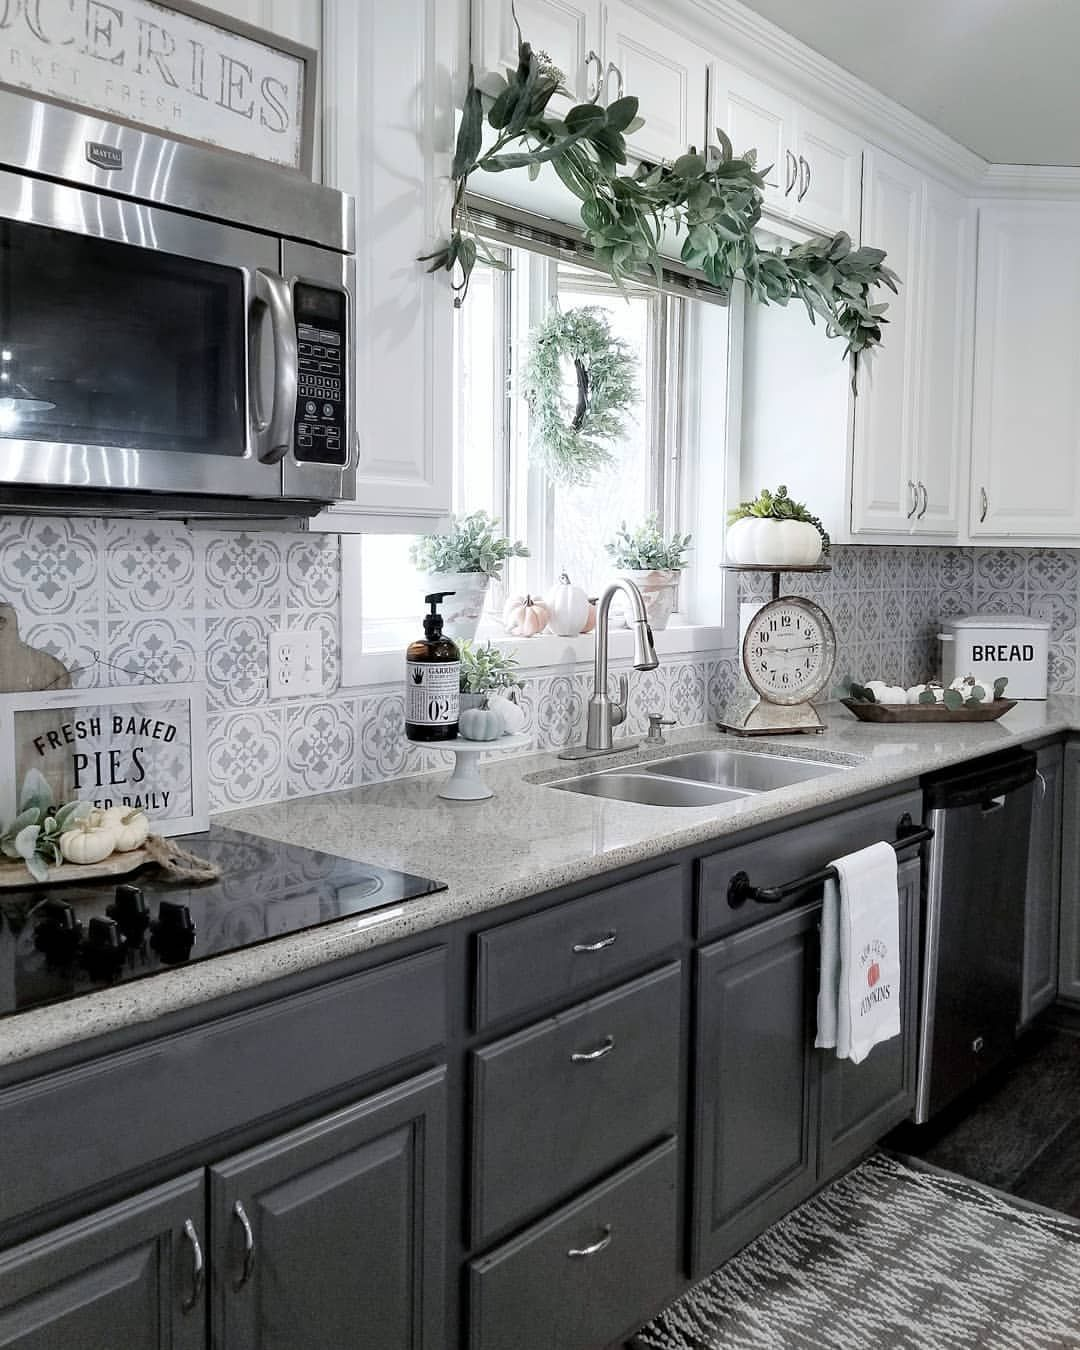 51 Unique Kitchen Cabinet Ideas To Get You Started Kitchen Style Kitchen Renovation Kitchen Cabinets Makeover